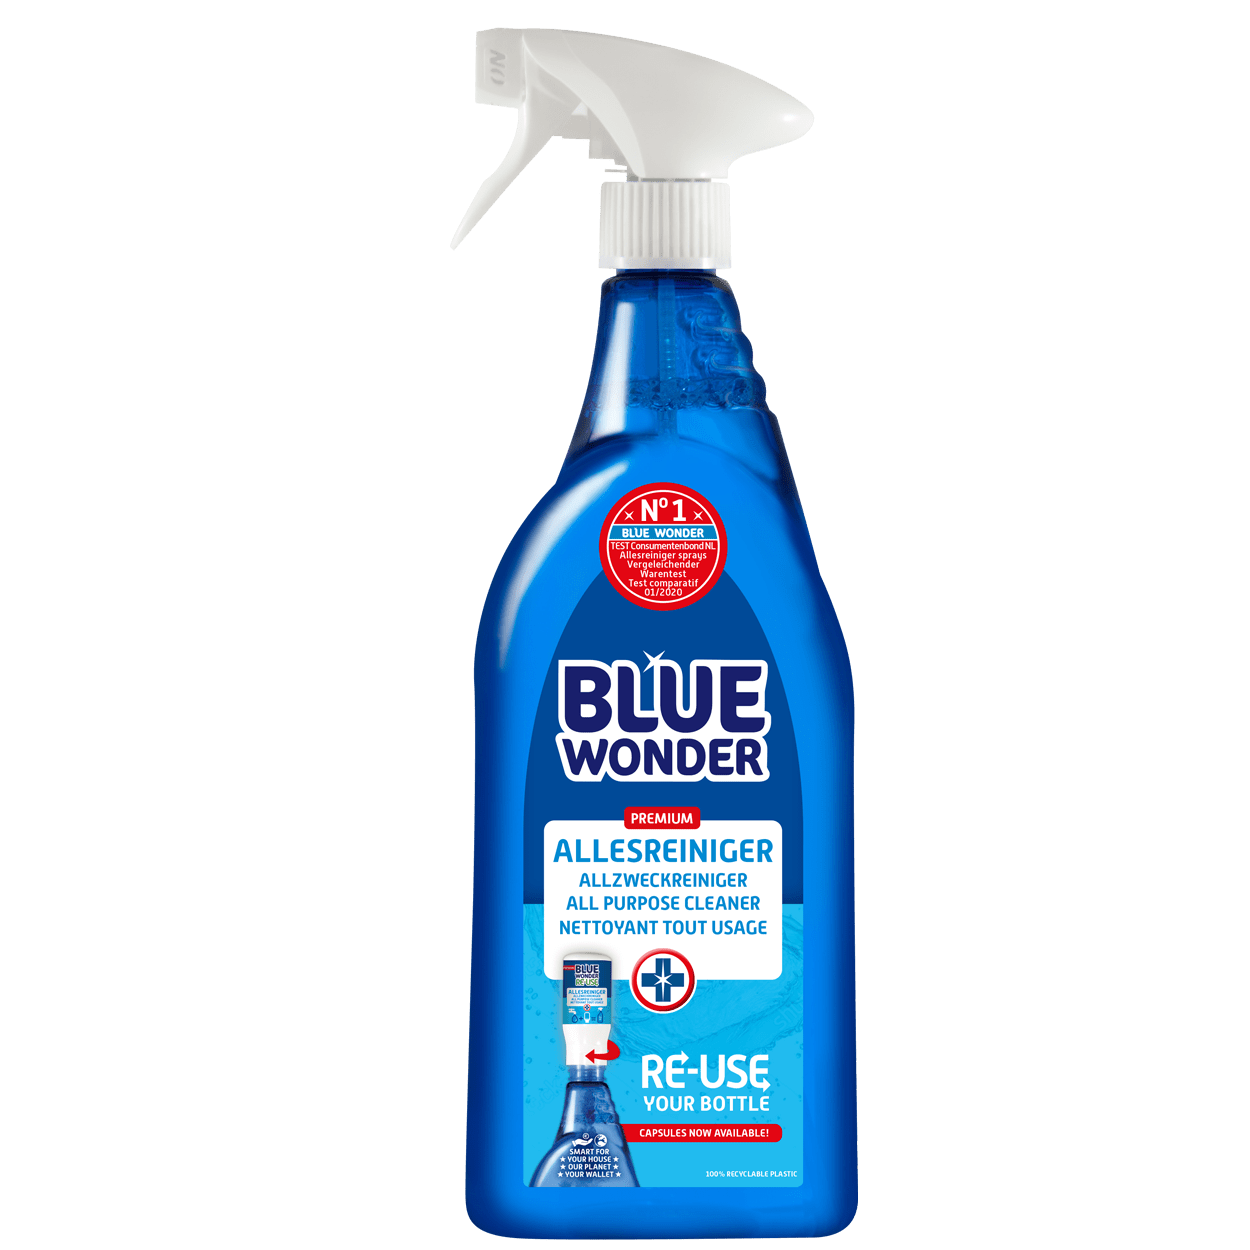 100% HYGIENIC, POWERFUL DEGREASER.  Removes grease, dirt and stains with ease. Use Blue Wonder for your kitchen, counter, extractor hood, cooker, griddle, flooring, upholstery, tiles, windows, mirrors, doors, woodwork, furniture, toys, bins, caravan, garden furniture, boat, rims, car interior, engine, windscreen washer, stains on washable clothing and much more.